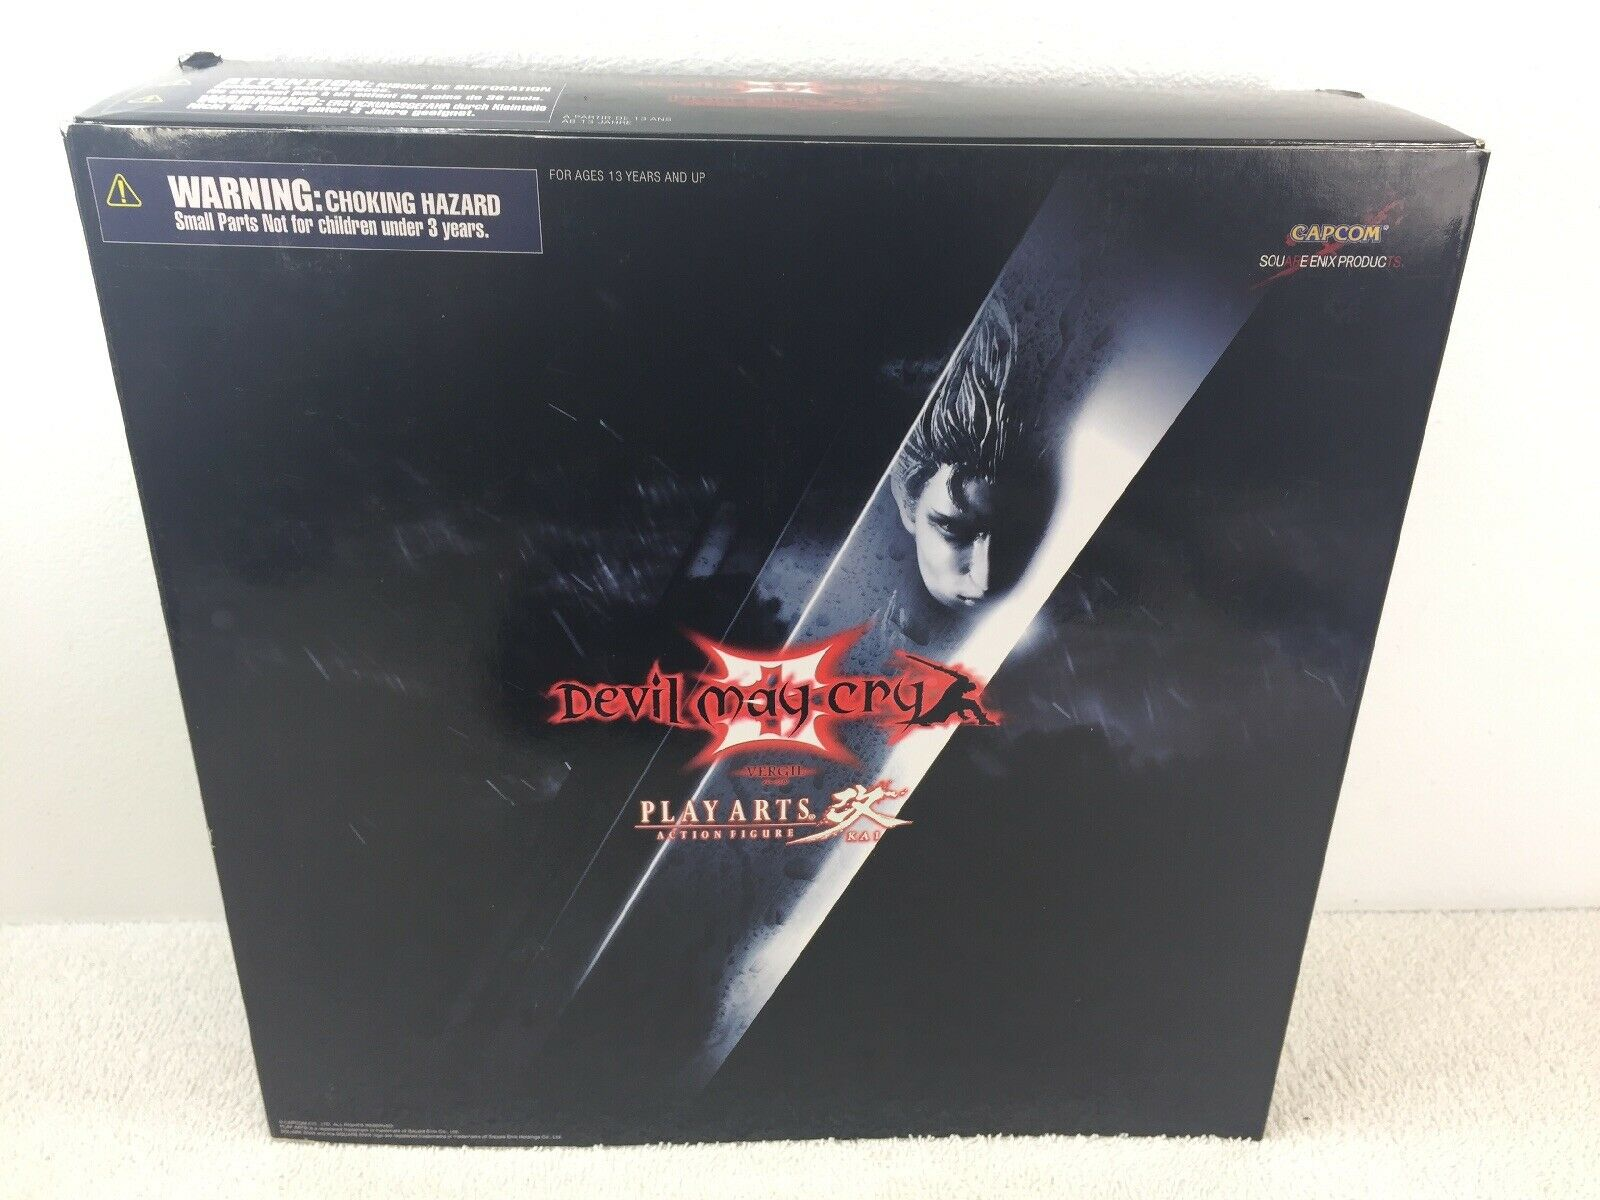 Devil May Cry 3 Play Arts Kai Vergil 9.5  tall Collectible Figure In Box Capcom